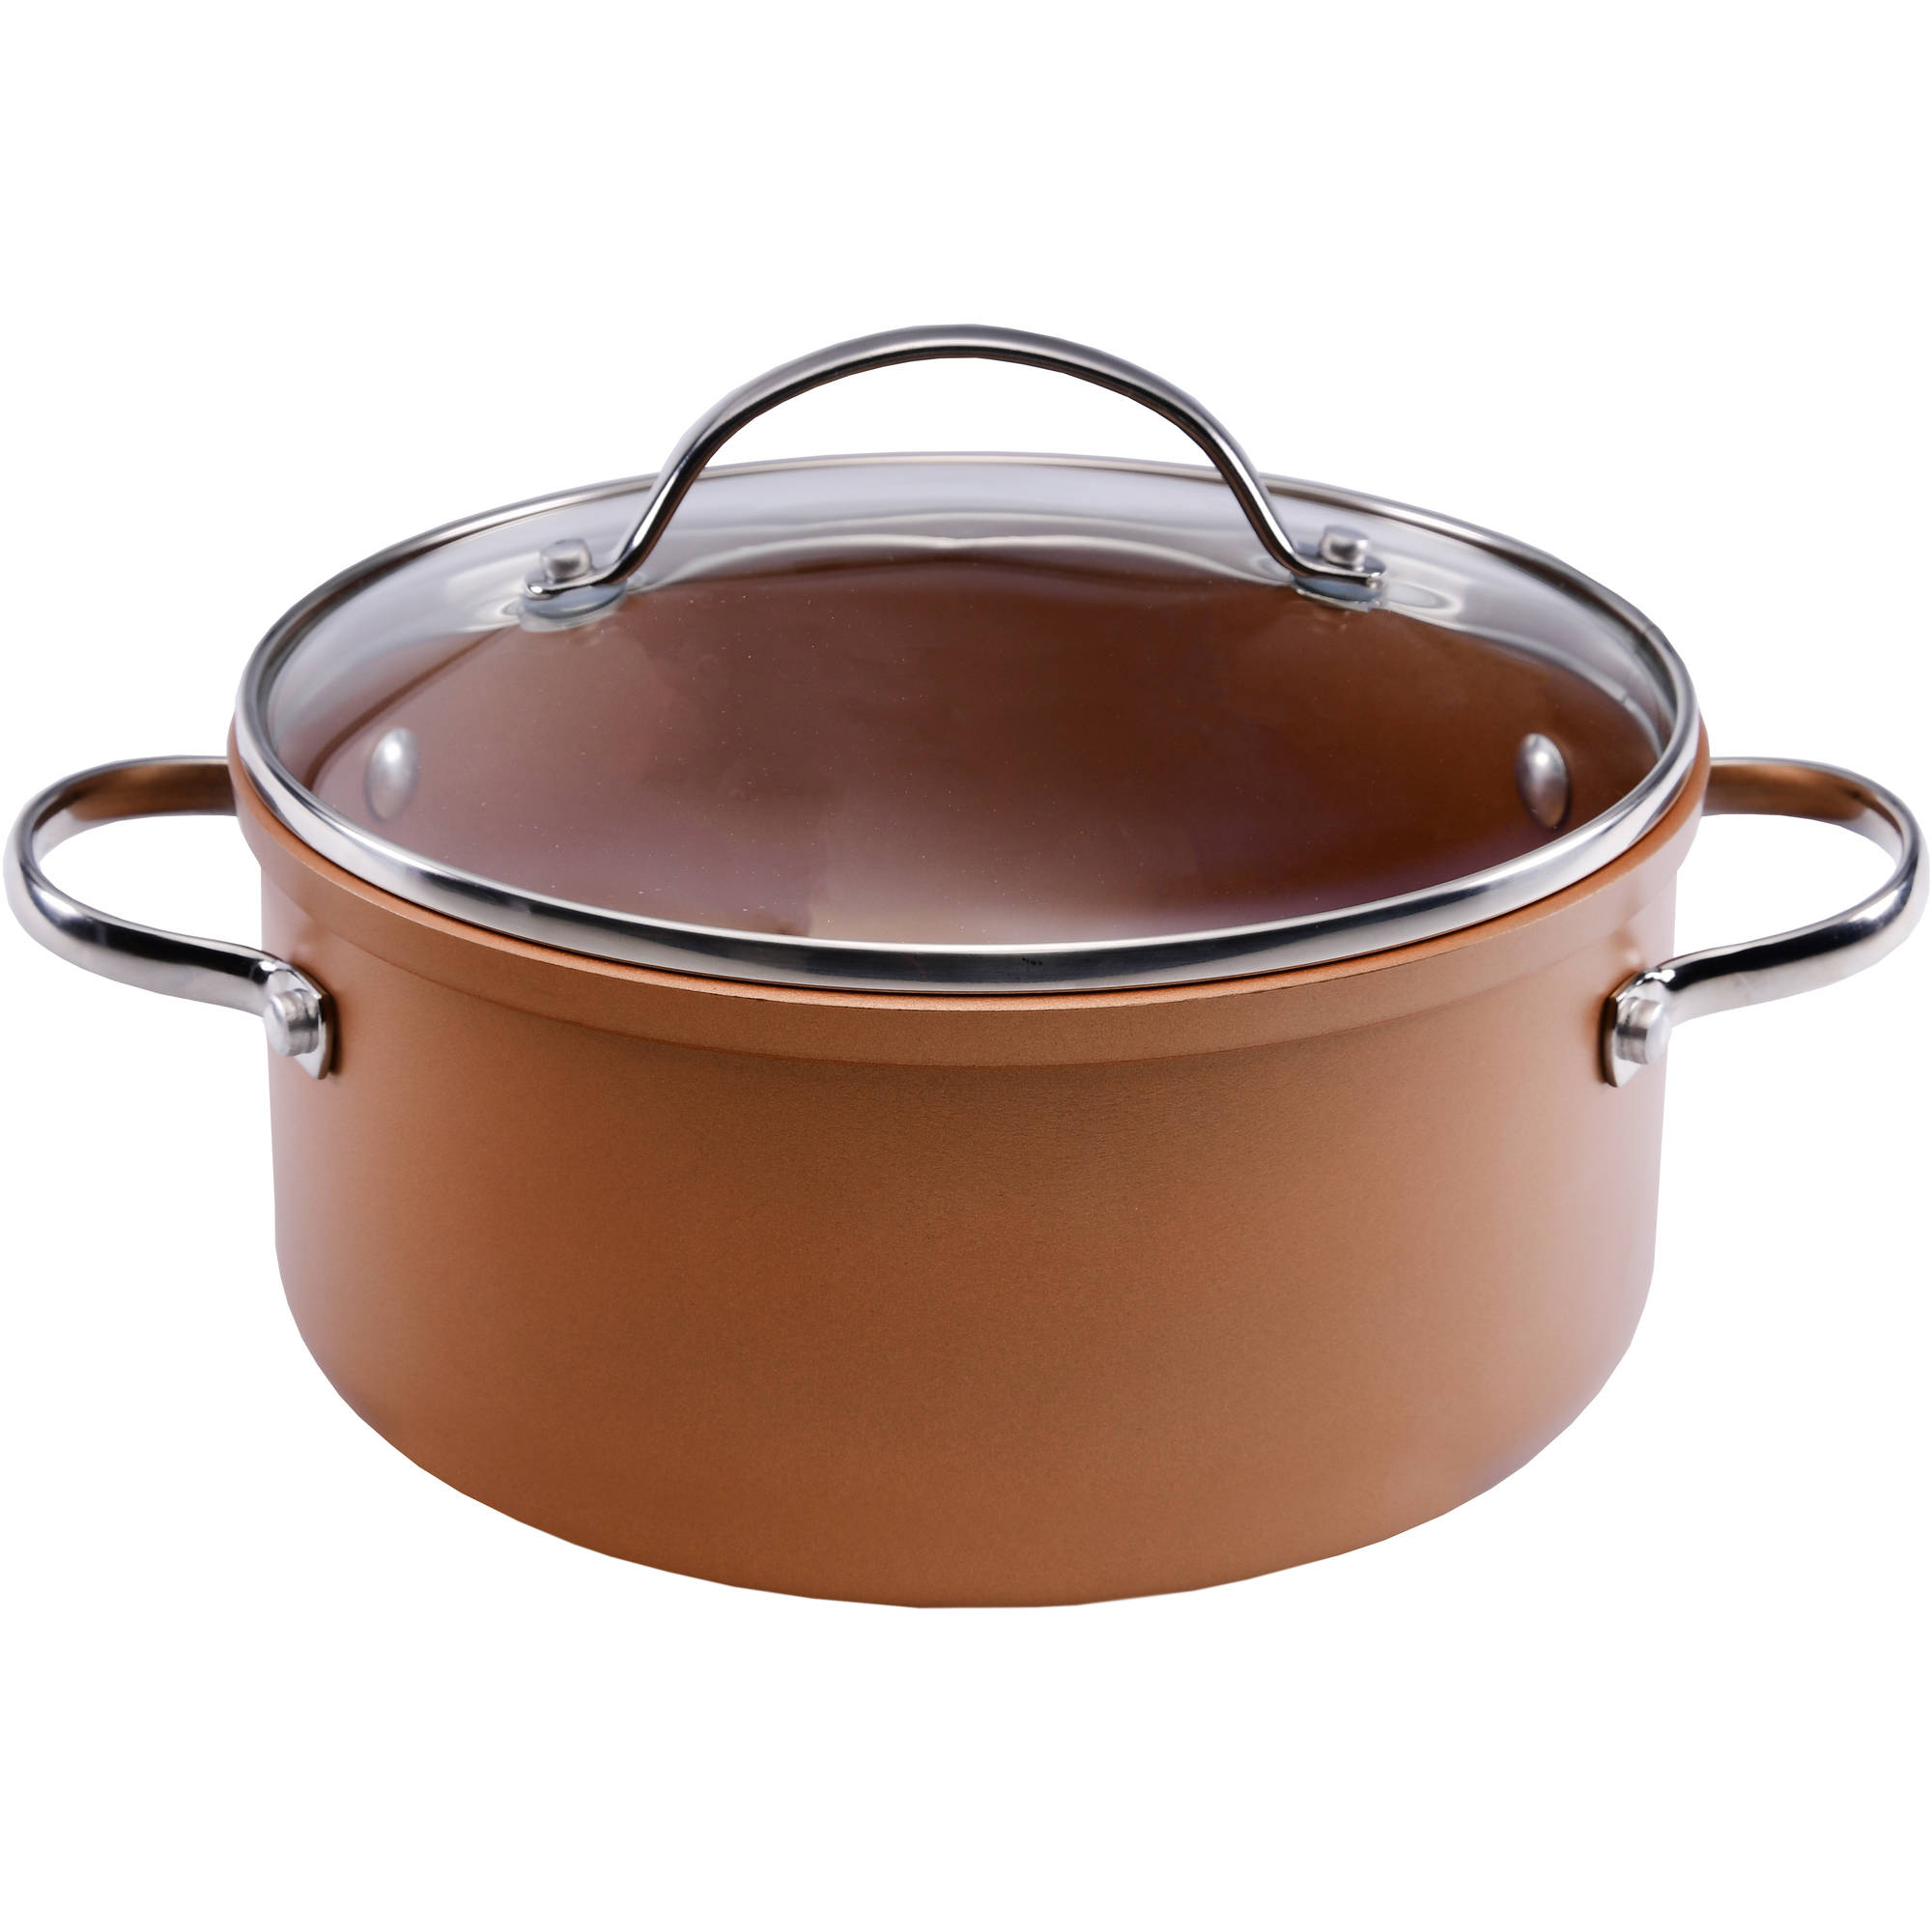 Farberware Colortech Aluminum Nonstick Covered Saucepot, 4-Quart, Copper